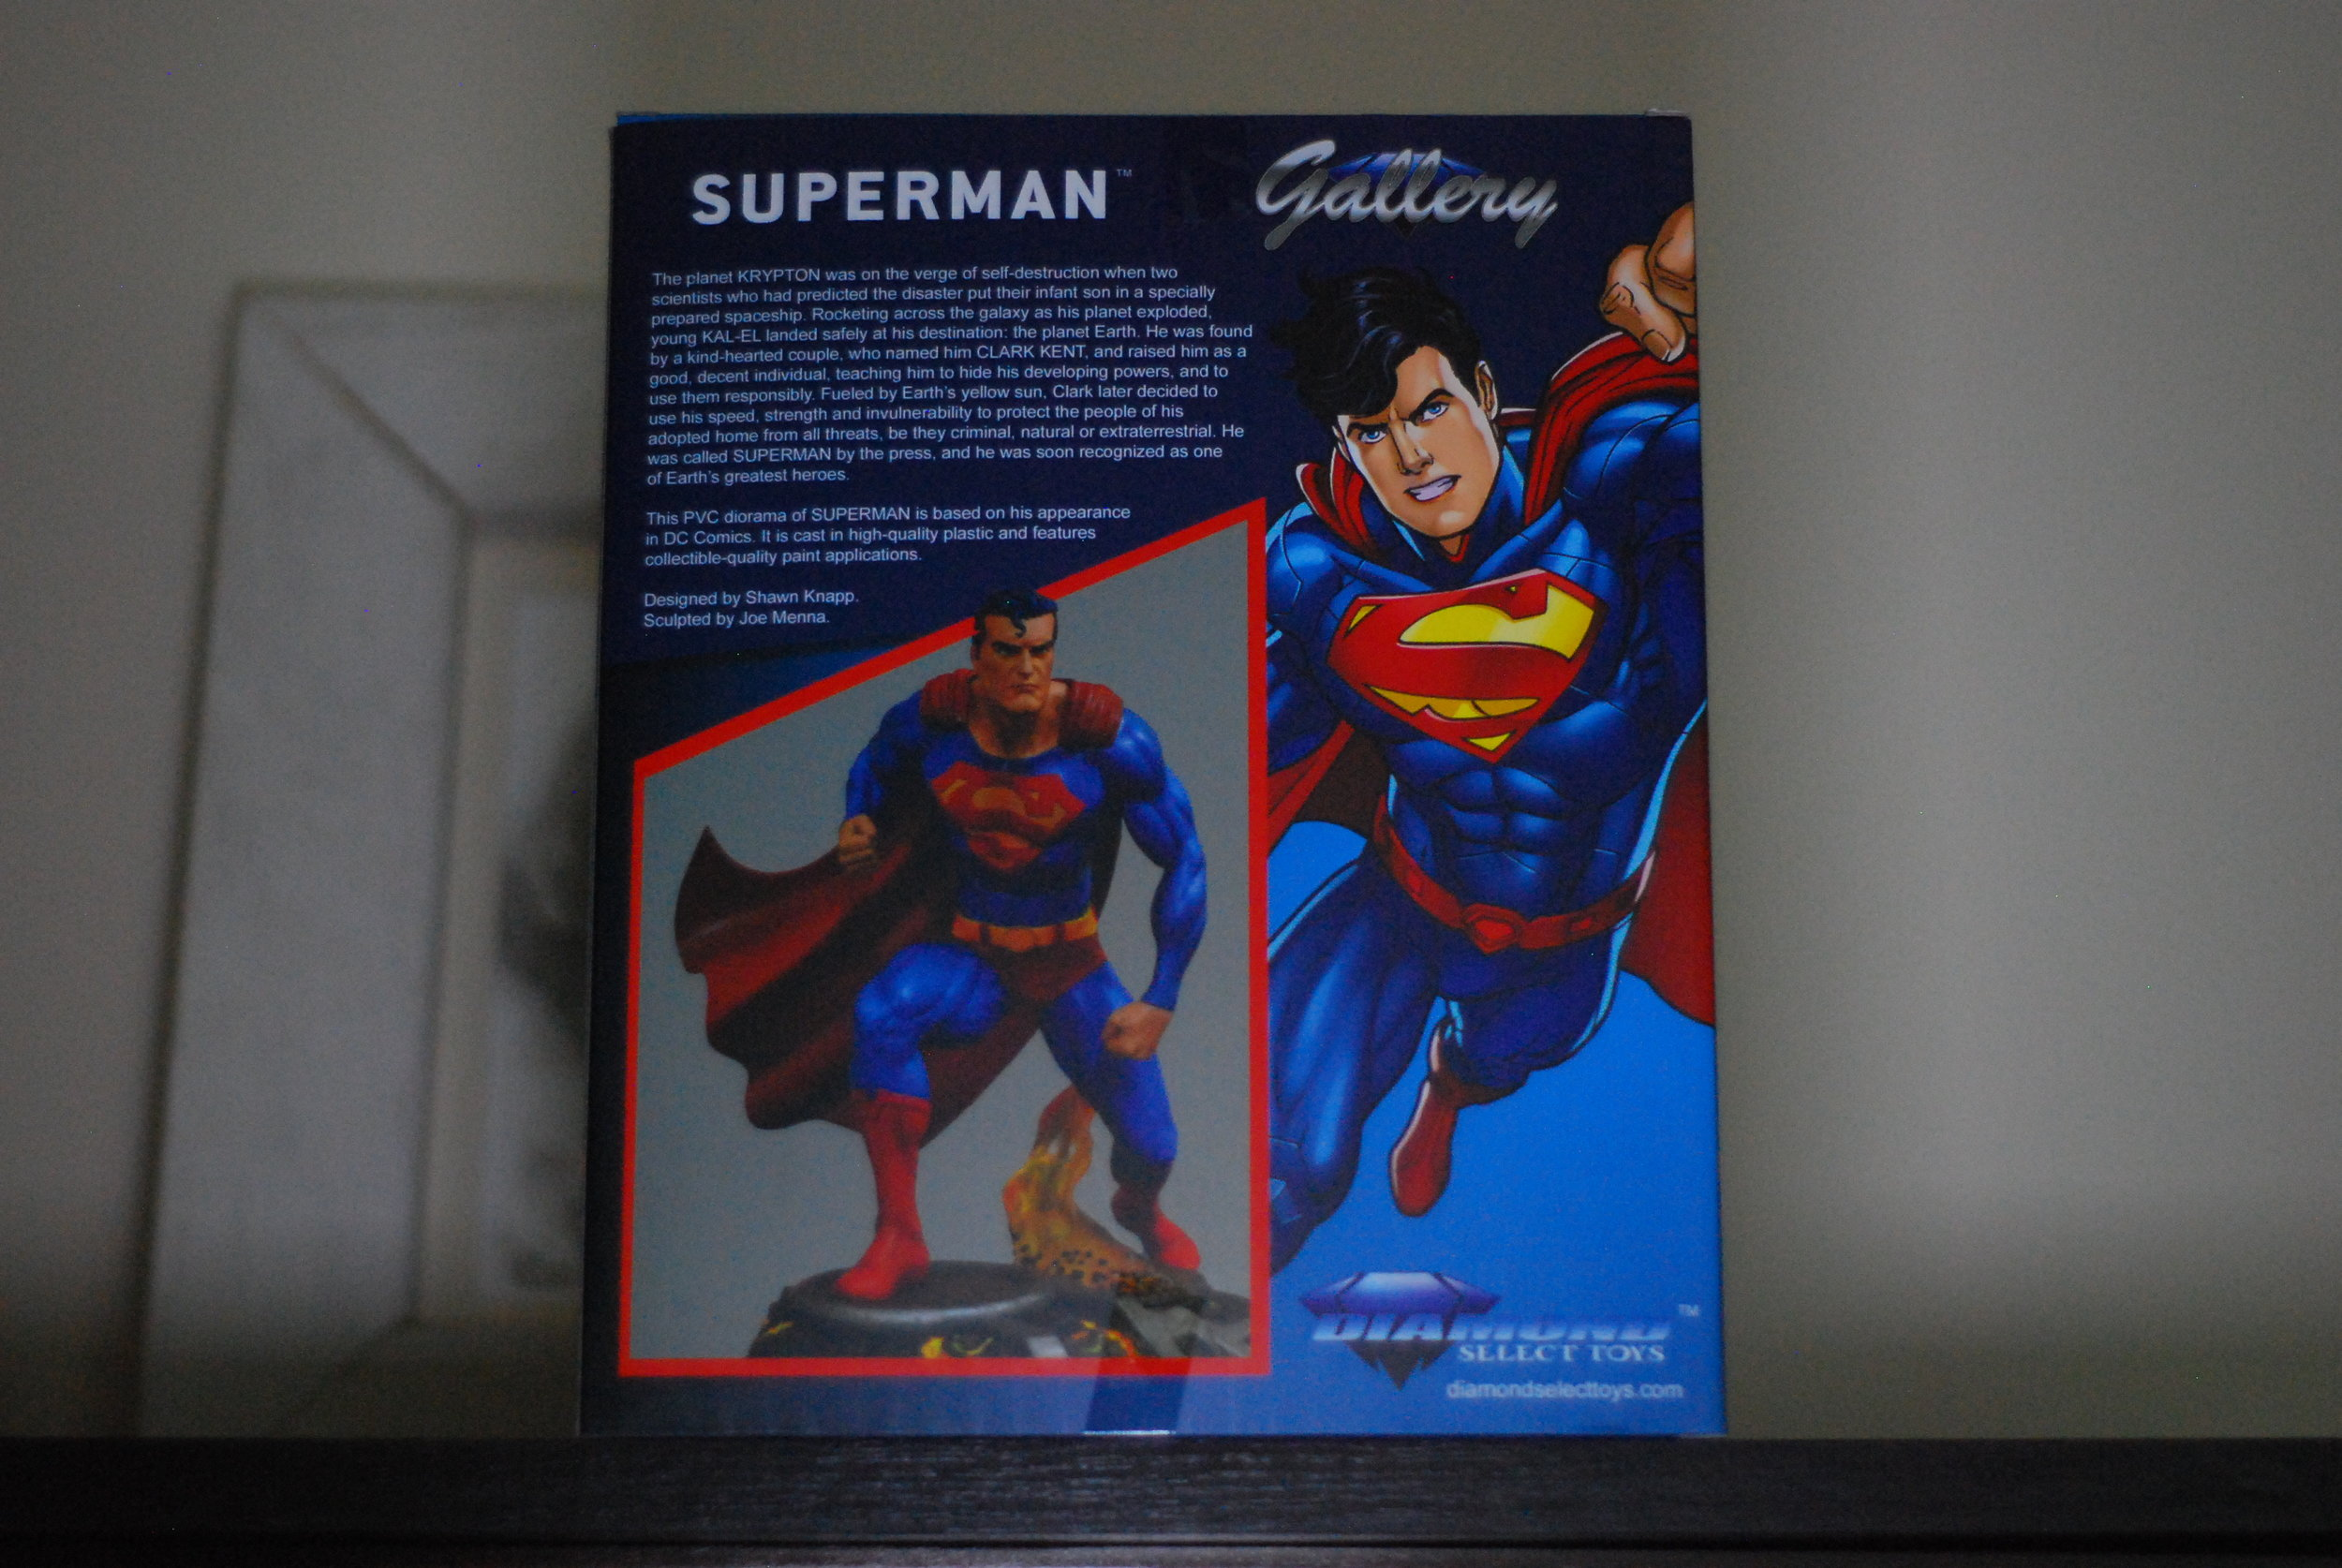 superman-gallery - 2.jpg